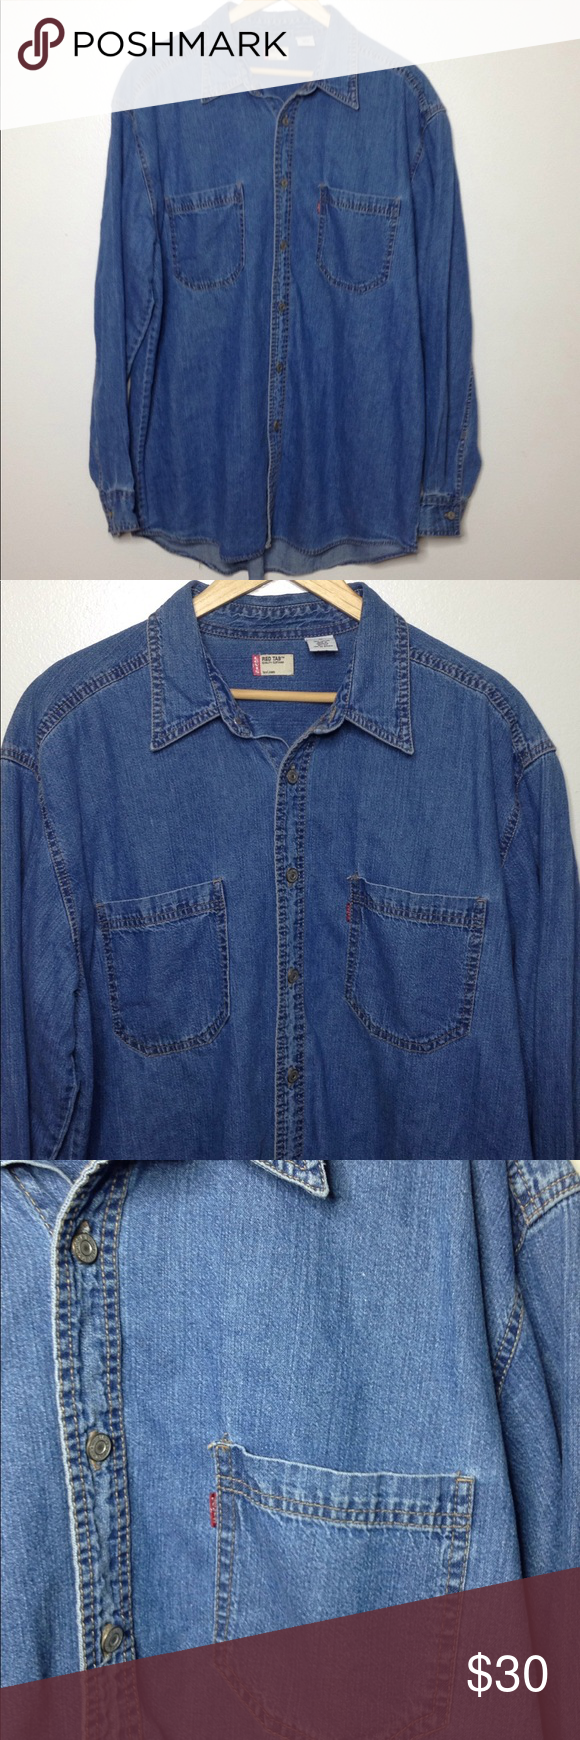 370f161fbc3 Levi s men red tab denim jean button shirt Large L Very good used  condition. Levi s Shirts Casual Button Down Shirts